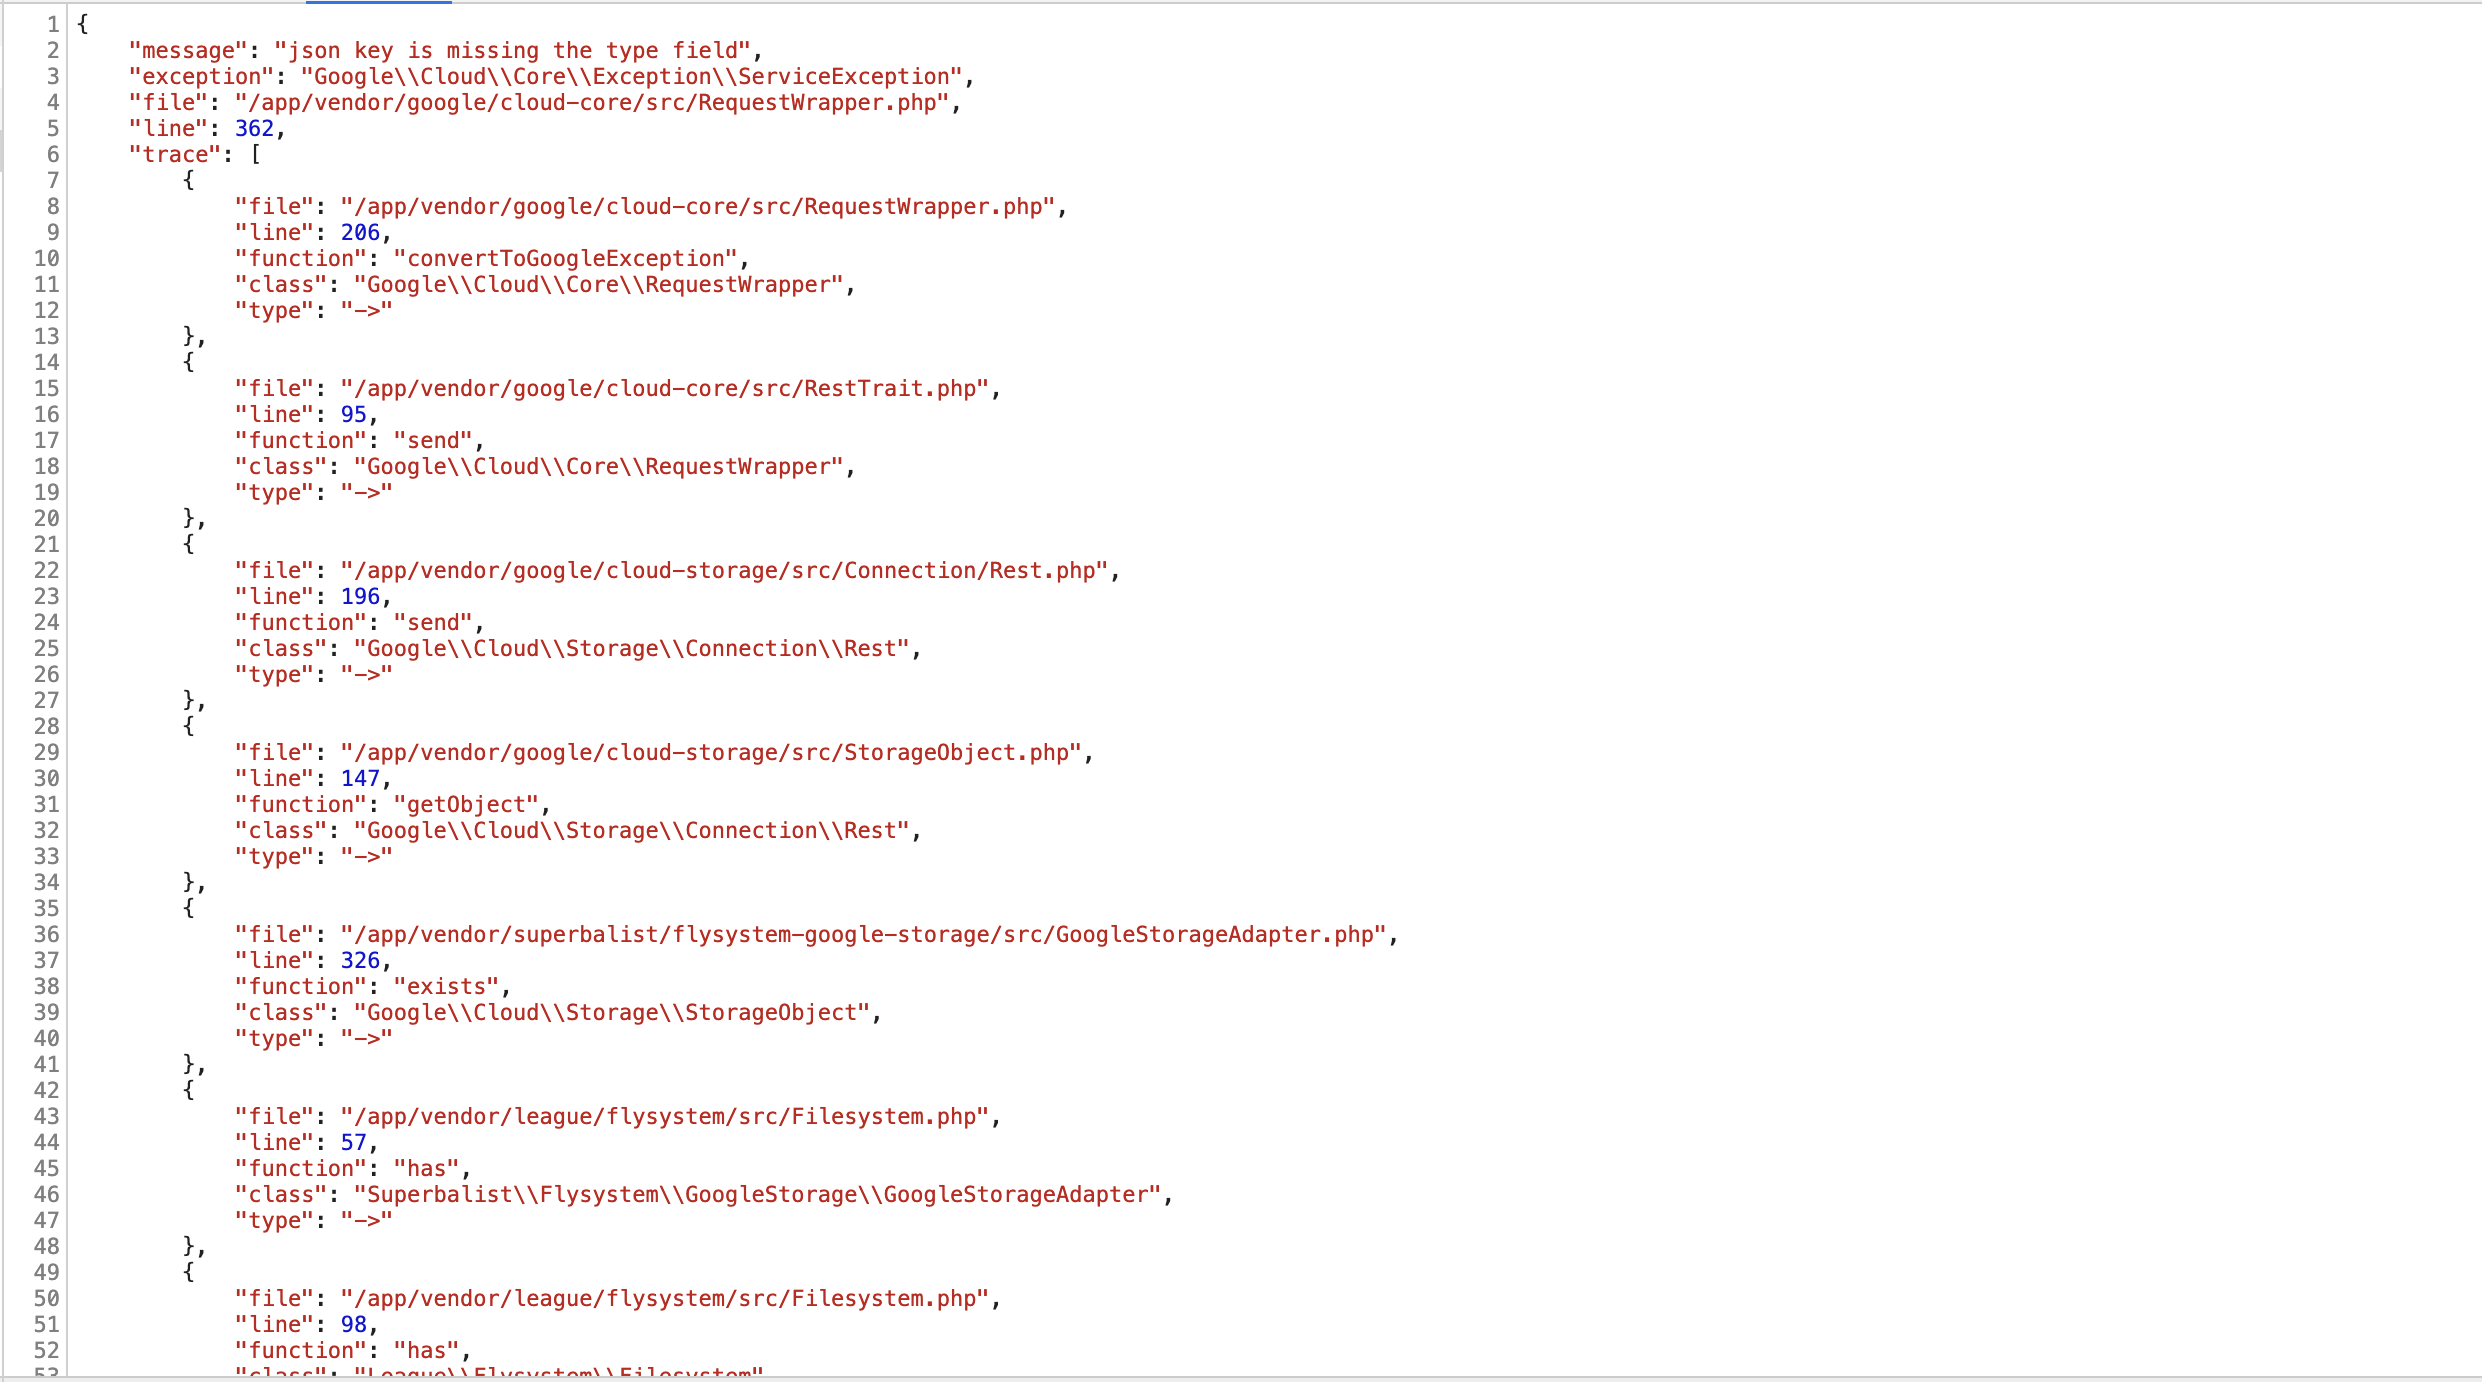 ServiceException) json key is missing the type field · Issue